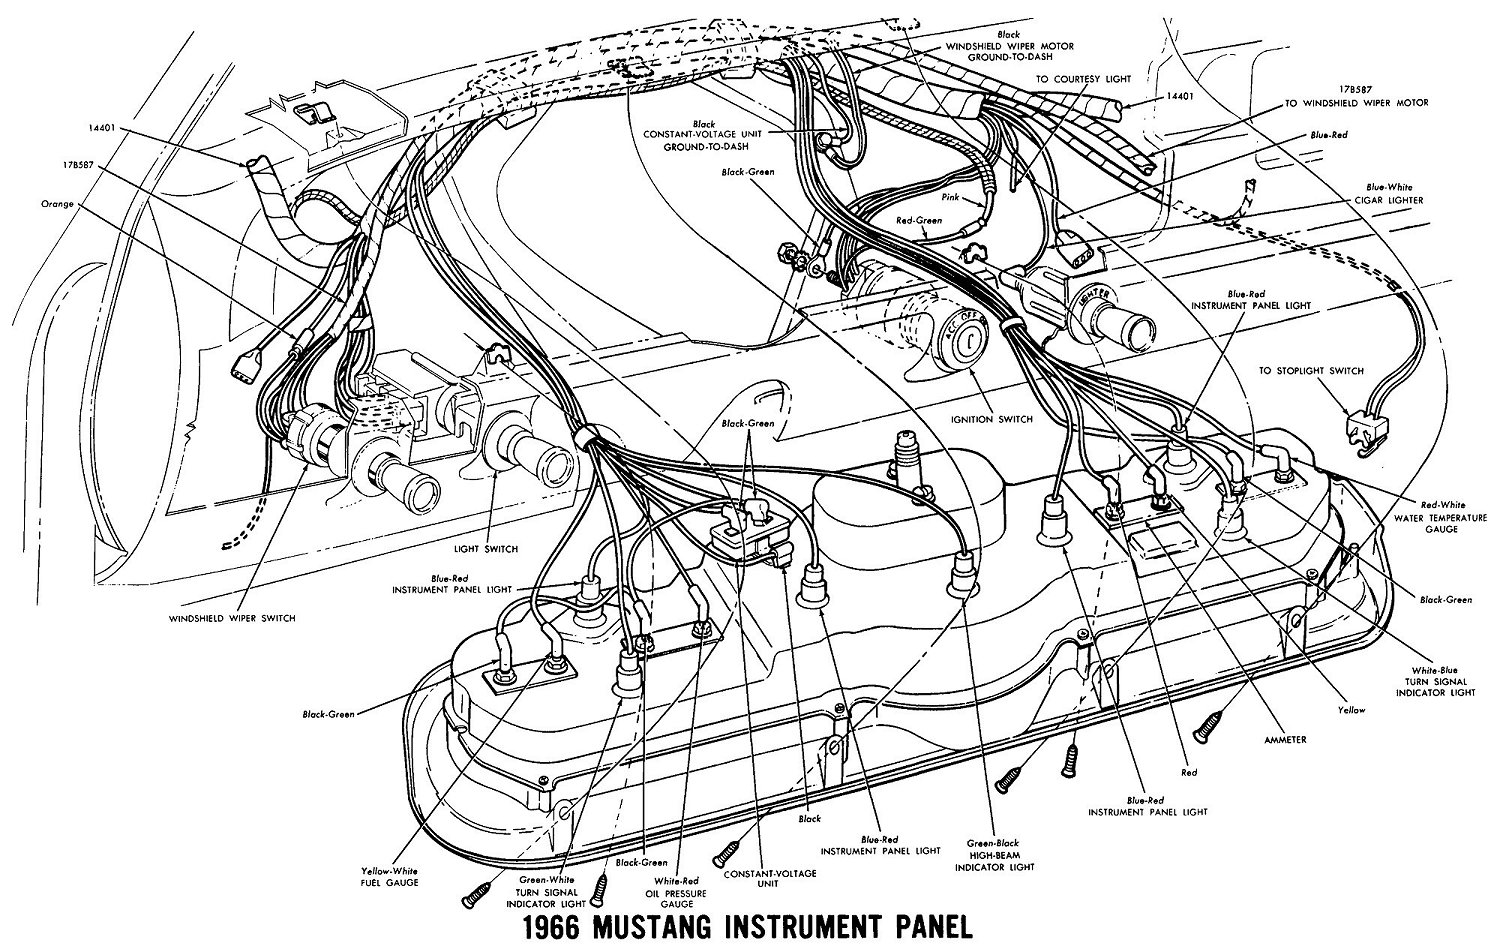 66instr 1966 mustang wiring diagrams average joe restoration Equus Fuel Gauge Wiring Diagram at bakdesigns.co